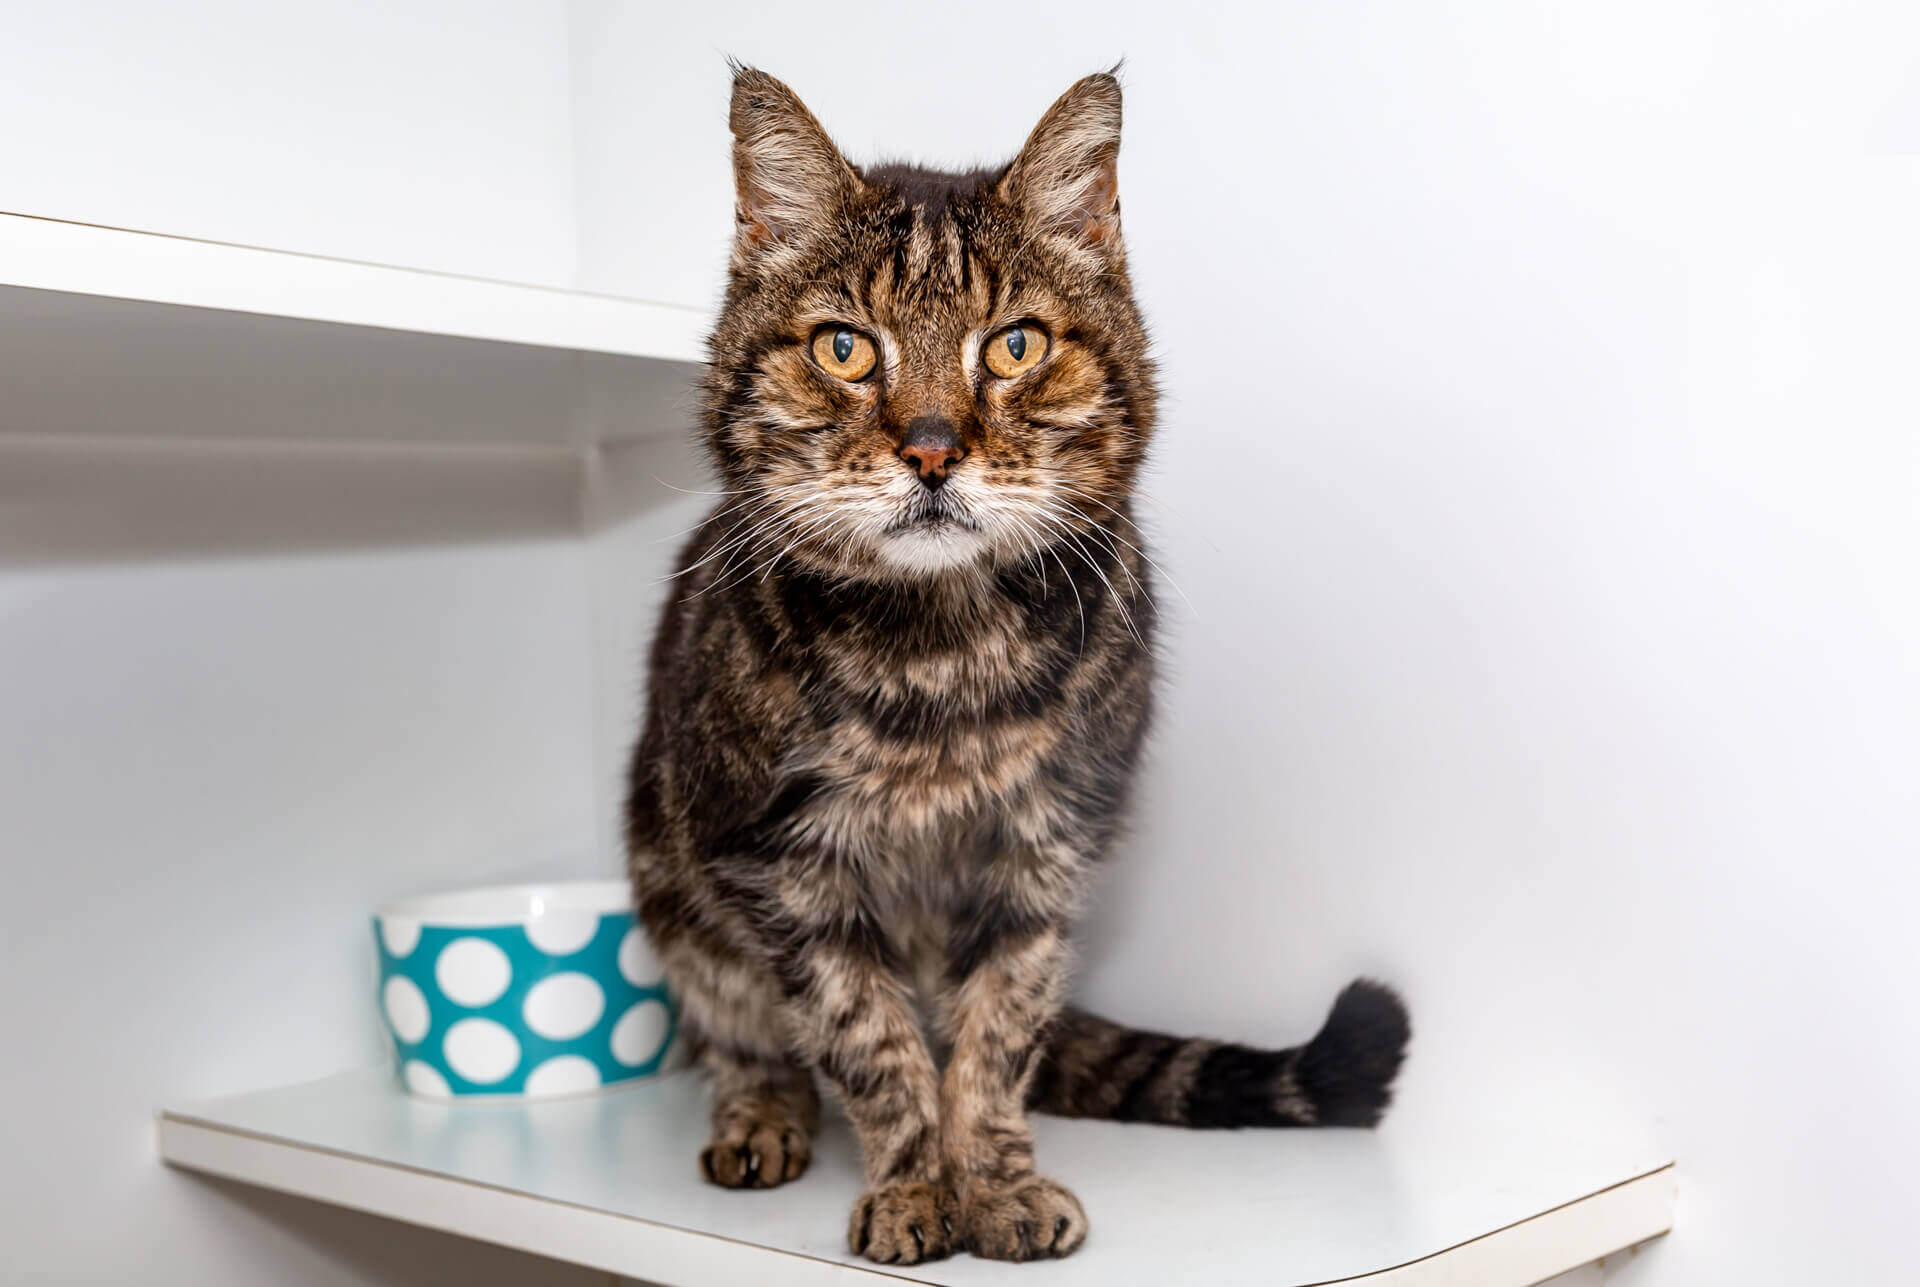 Wilbur the senior tabby cat for adoption